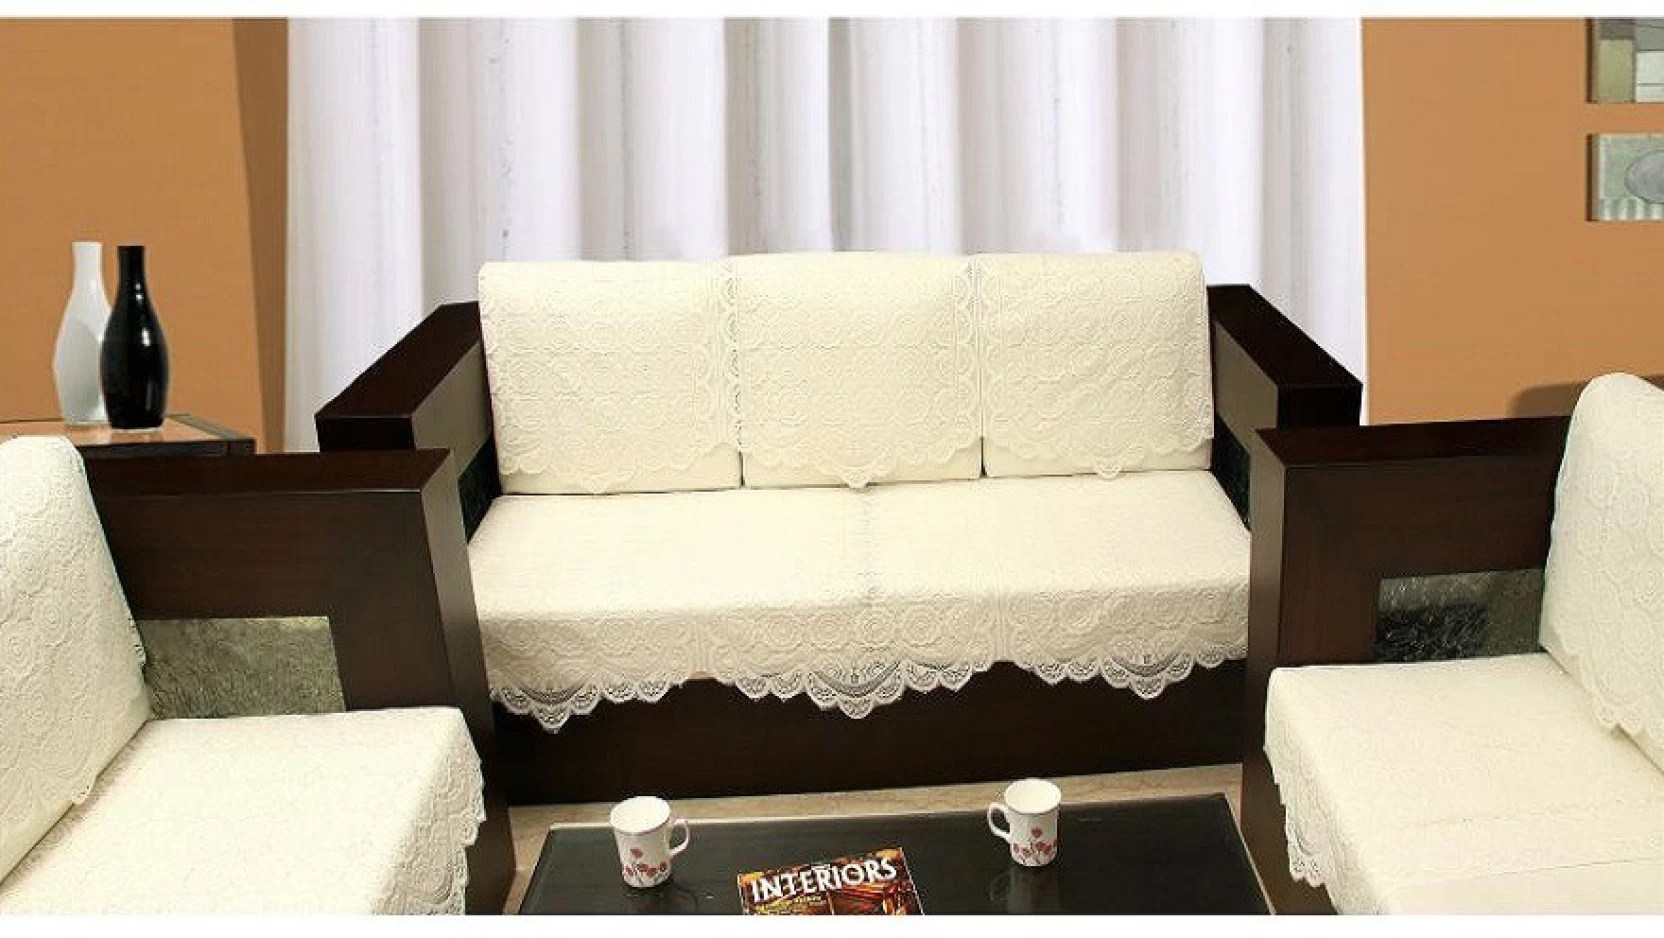 chair pad covers online india exquisite essex zesture jacquard sofa cover price in buy